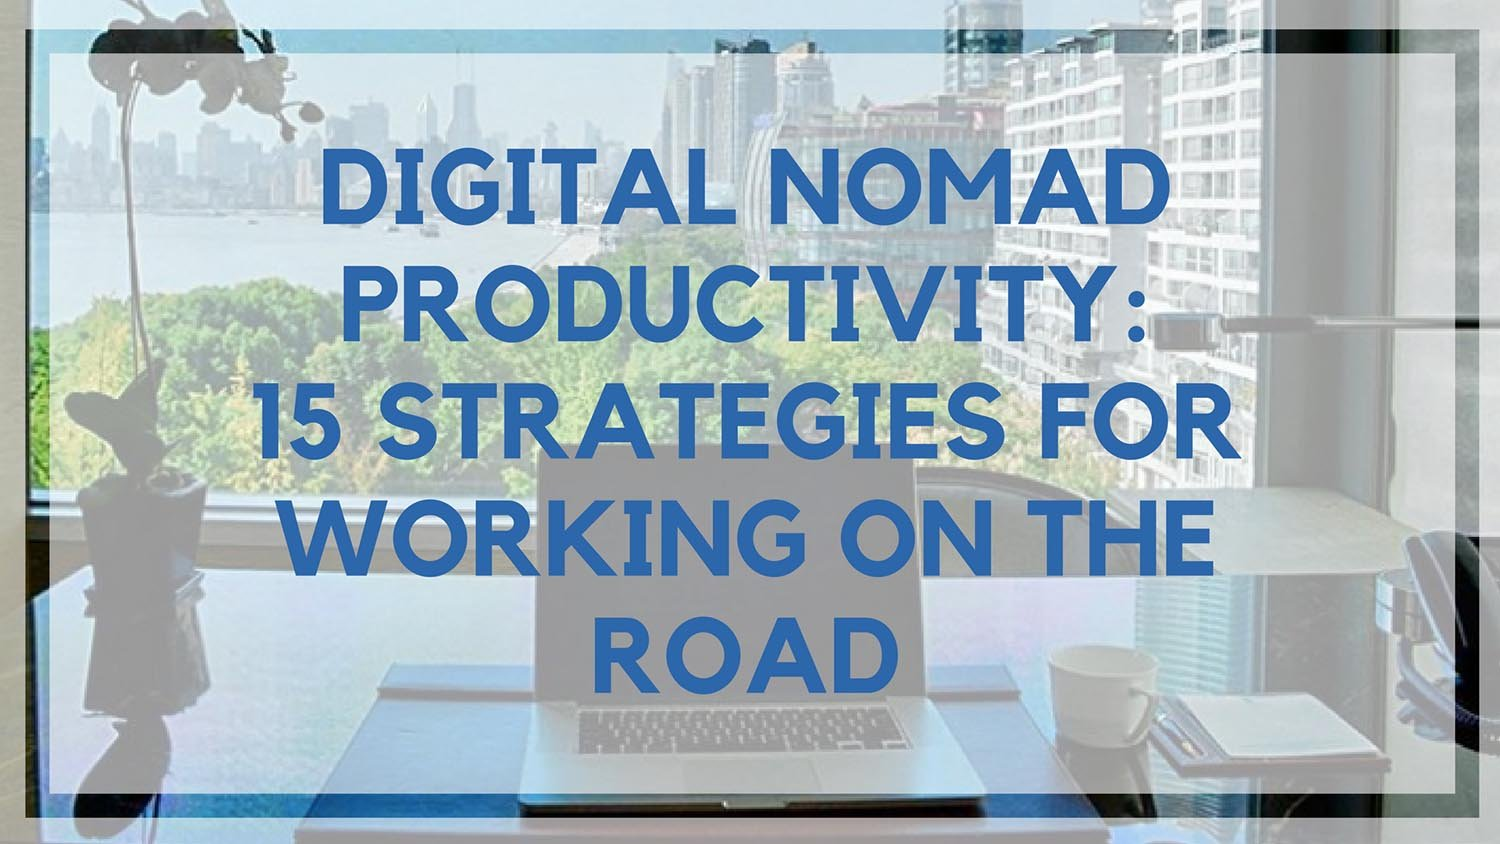 Digital Nomad Productivity: 15 Strategies for Working on the Road